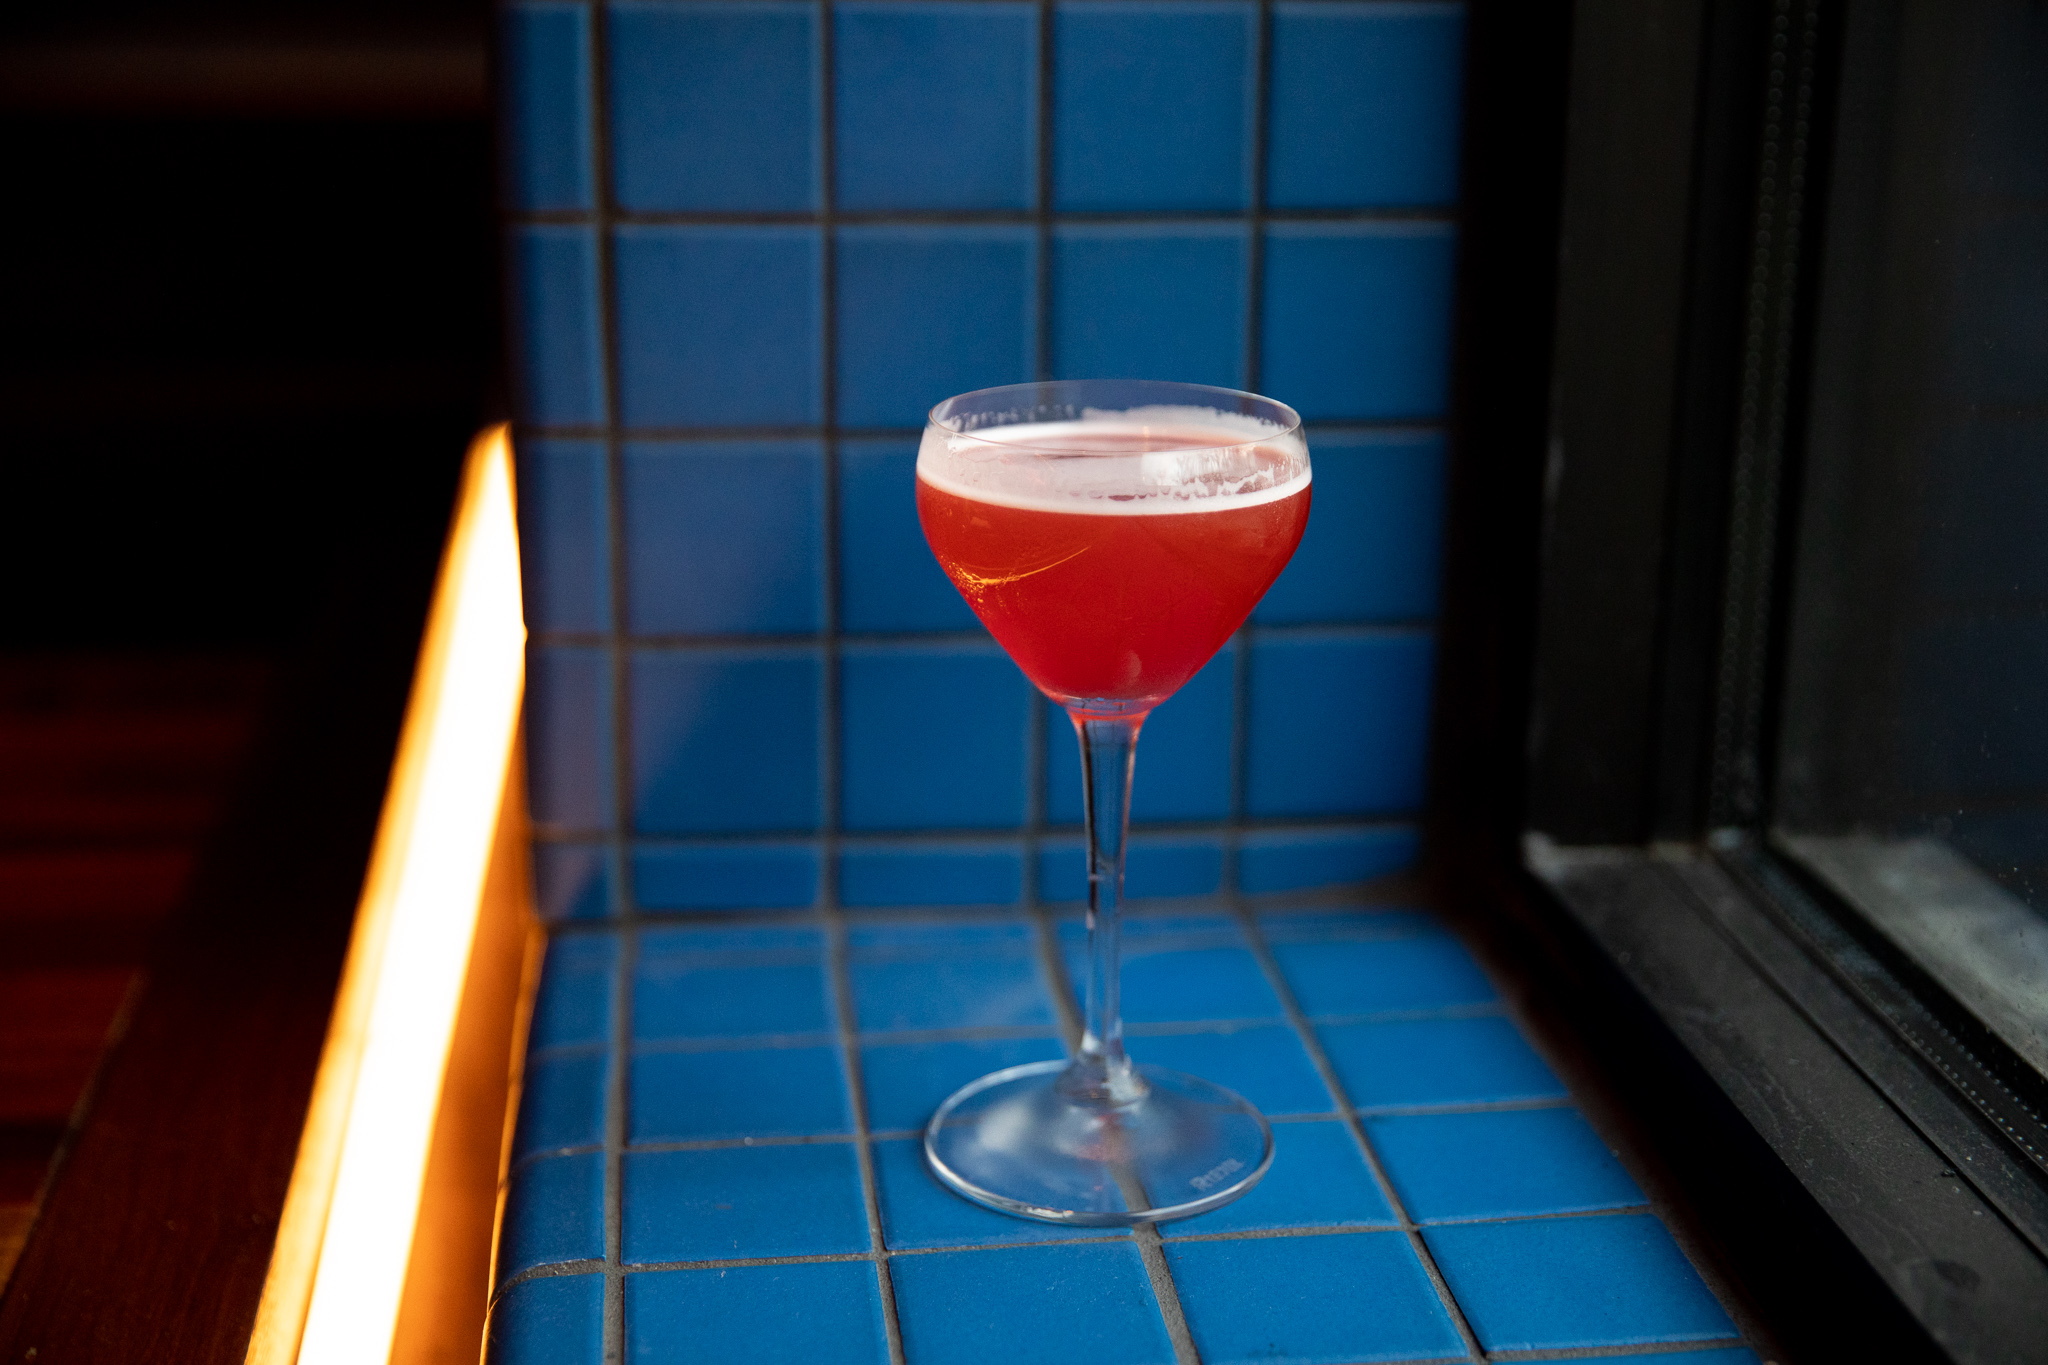 The bright red cocktail is in a coup glass on a window sill covered in blue tile.